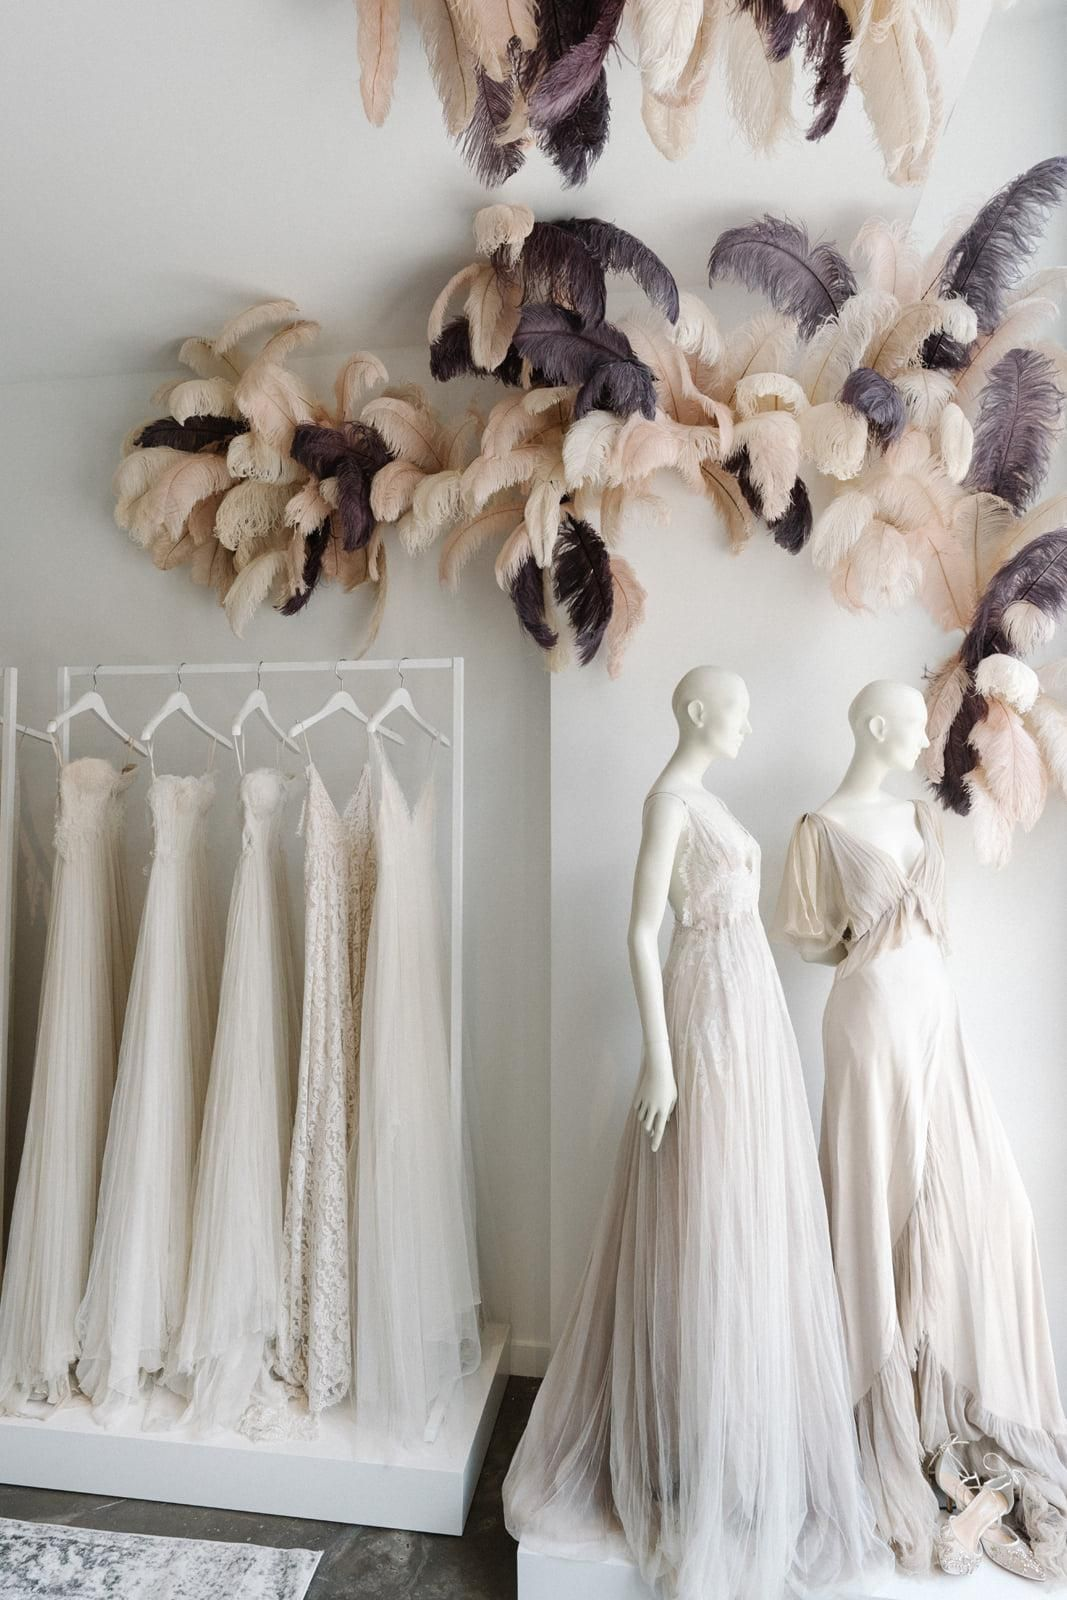 The Best Wedding Dress Boutiques Salons In Nyc Bridal Shop Decor Bridal Showroom Bridal Boutique Interior